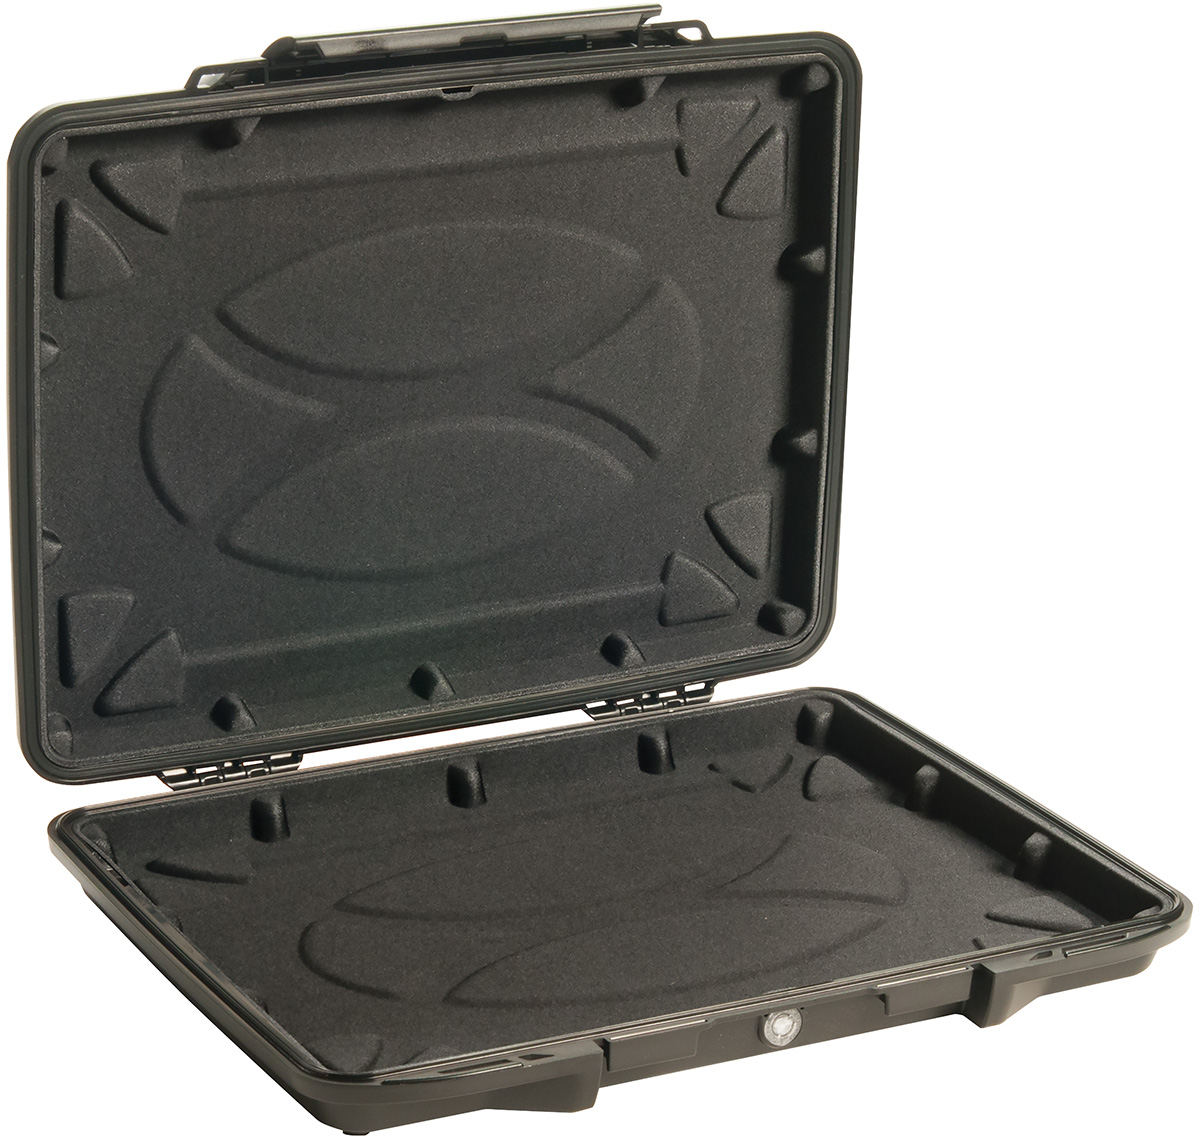 pelican peli products 1085CC 1085 usa made waterproof hardcase